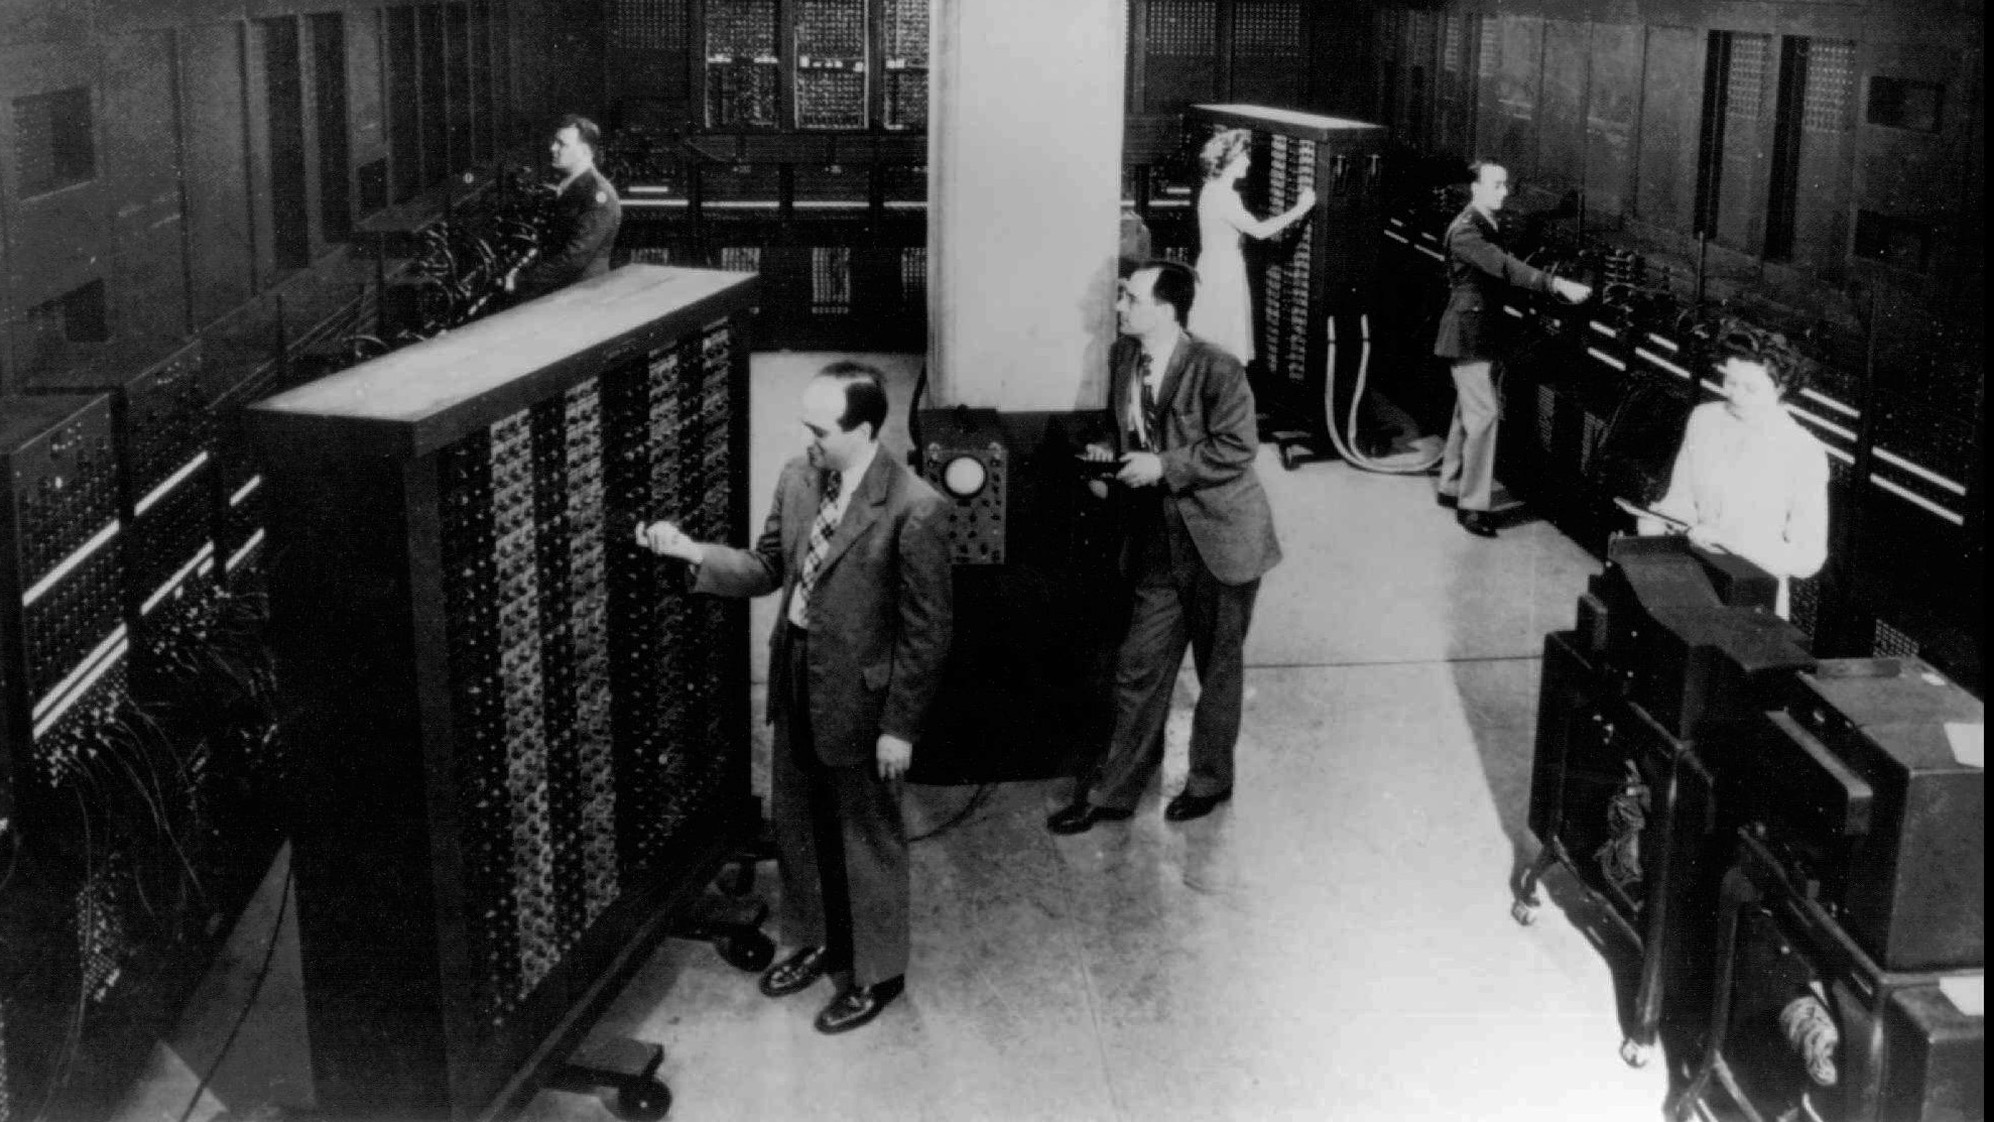 J. Presper Eckert, foreground left, and John W. Mauchly, leaning against pole, are pictured with the Electronic Numerical Integrator and Computer (ENIAC) in this undated photo from the University of Pennsylvania Archives. They were the masterminds behind ENIAC which was introduced on Feb. 14, 1946. Fully operational, ENIAC filled up a room 30 x 50 feet and weighed 50 tons. The development of smaller personal computers in 1981 by IBM, and the portable laptop version have tranformed our world from an industrial age to an informational age.